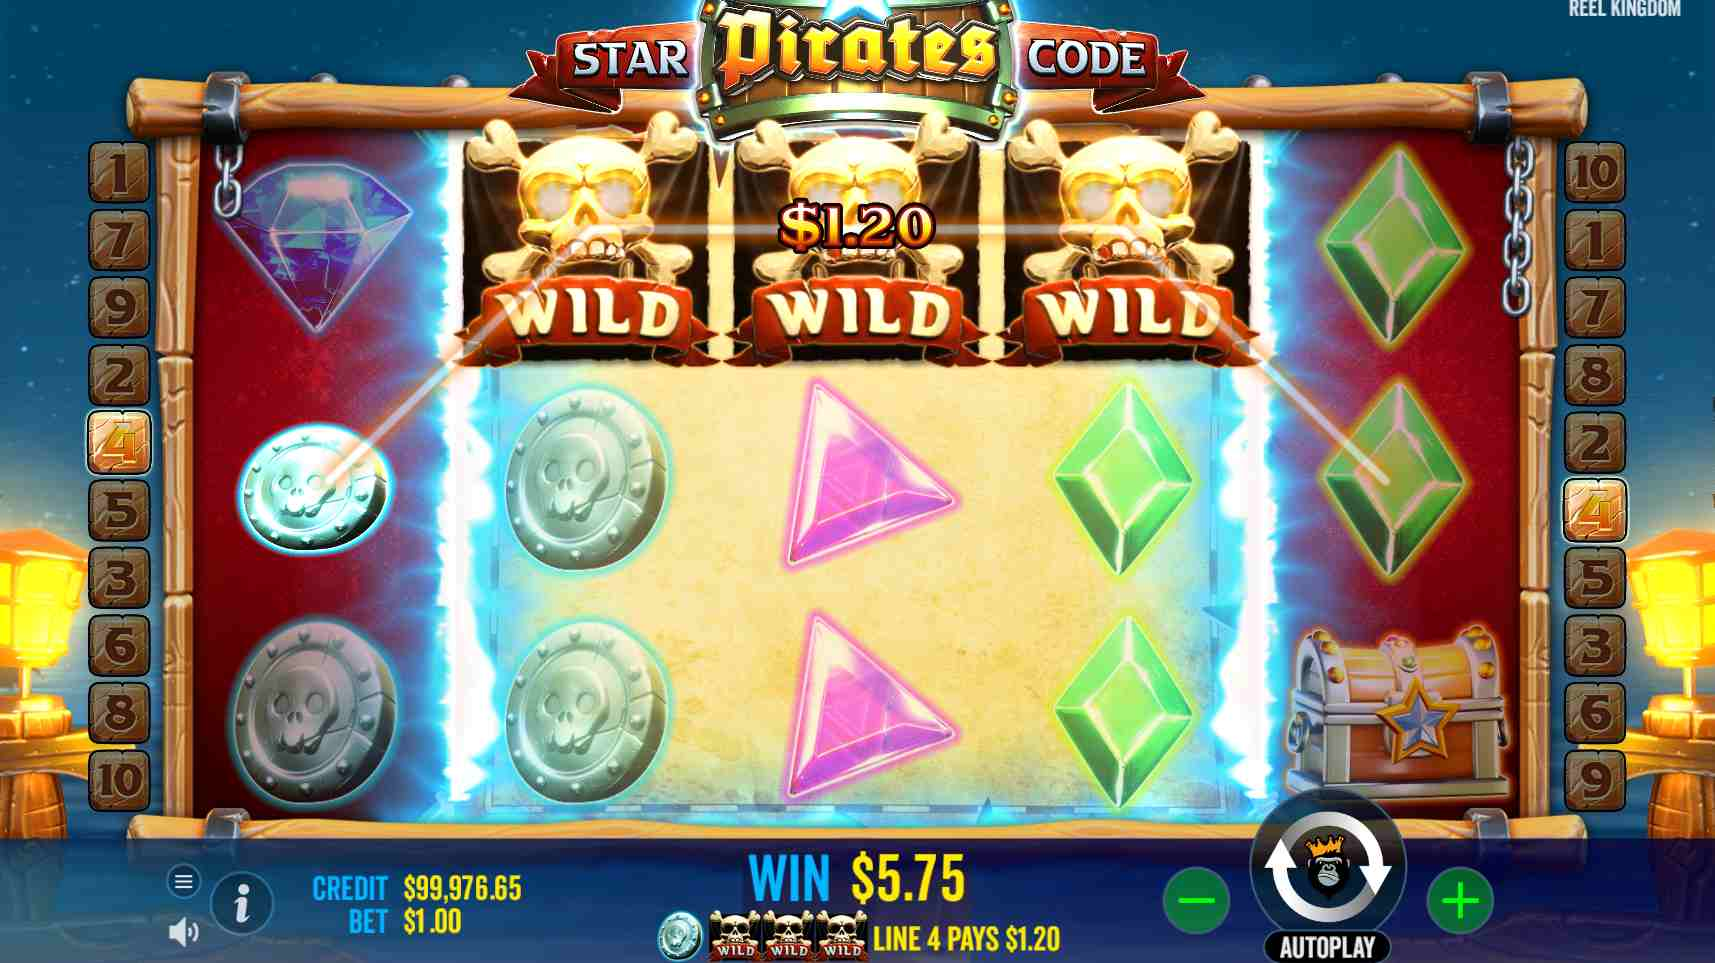 Star Pirates Code Respin Feature